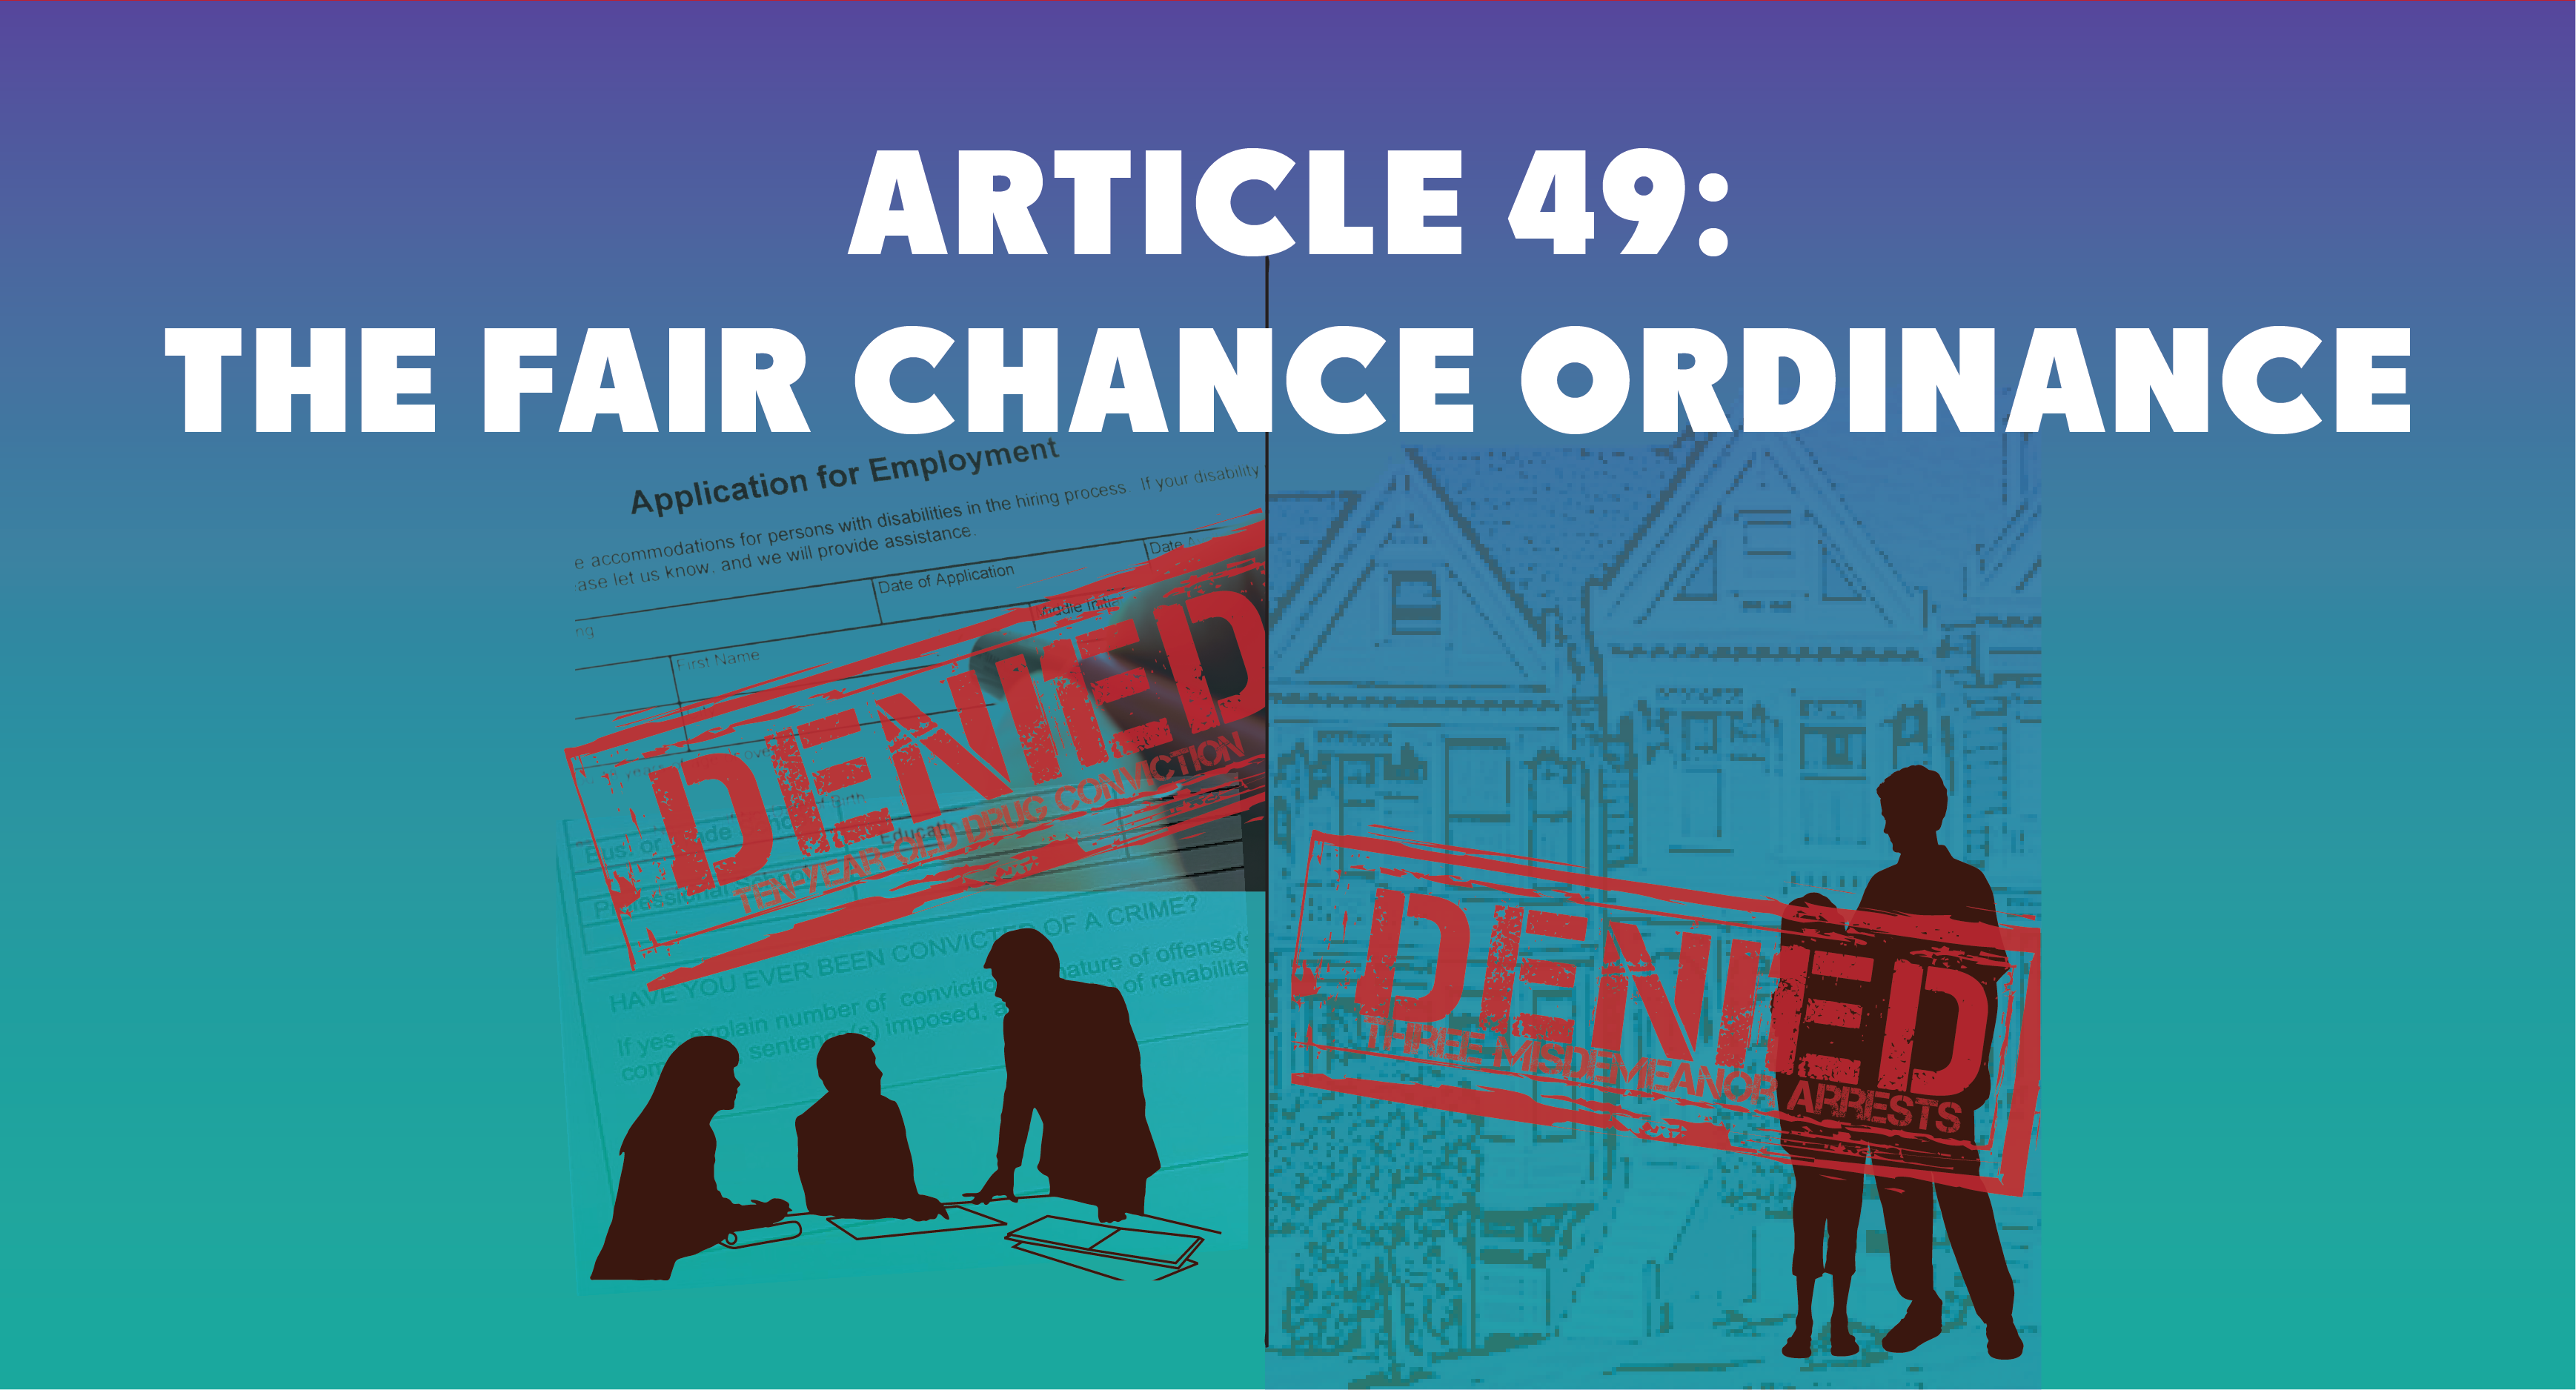 Header for the web page describing Article 49: The Fair Chance Ordinance